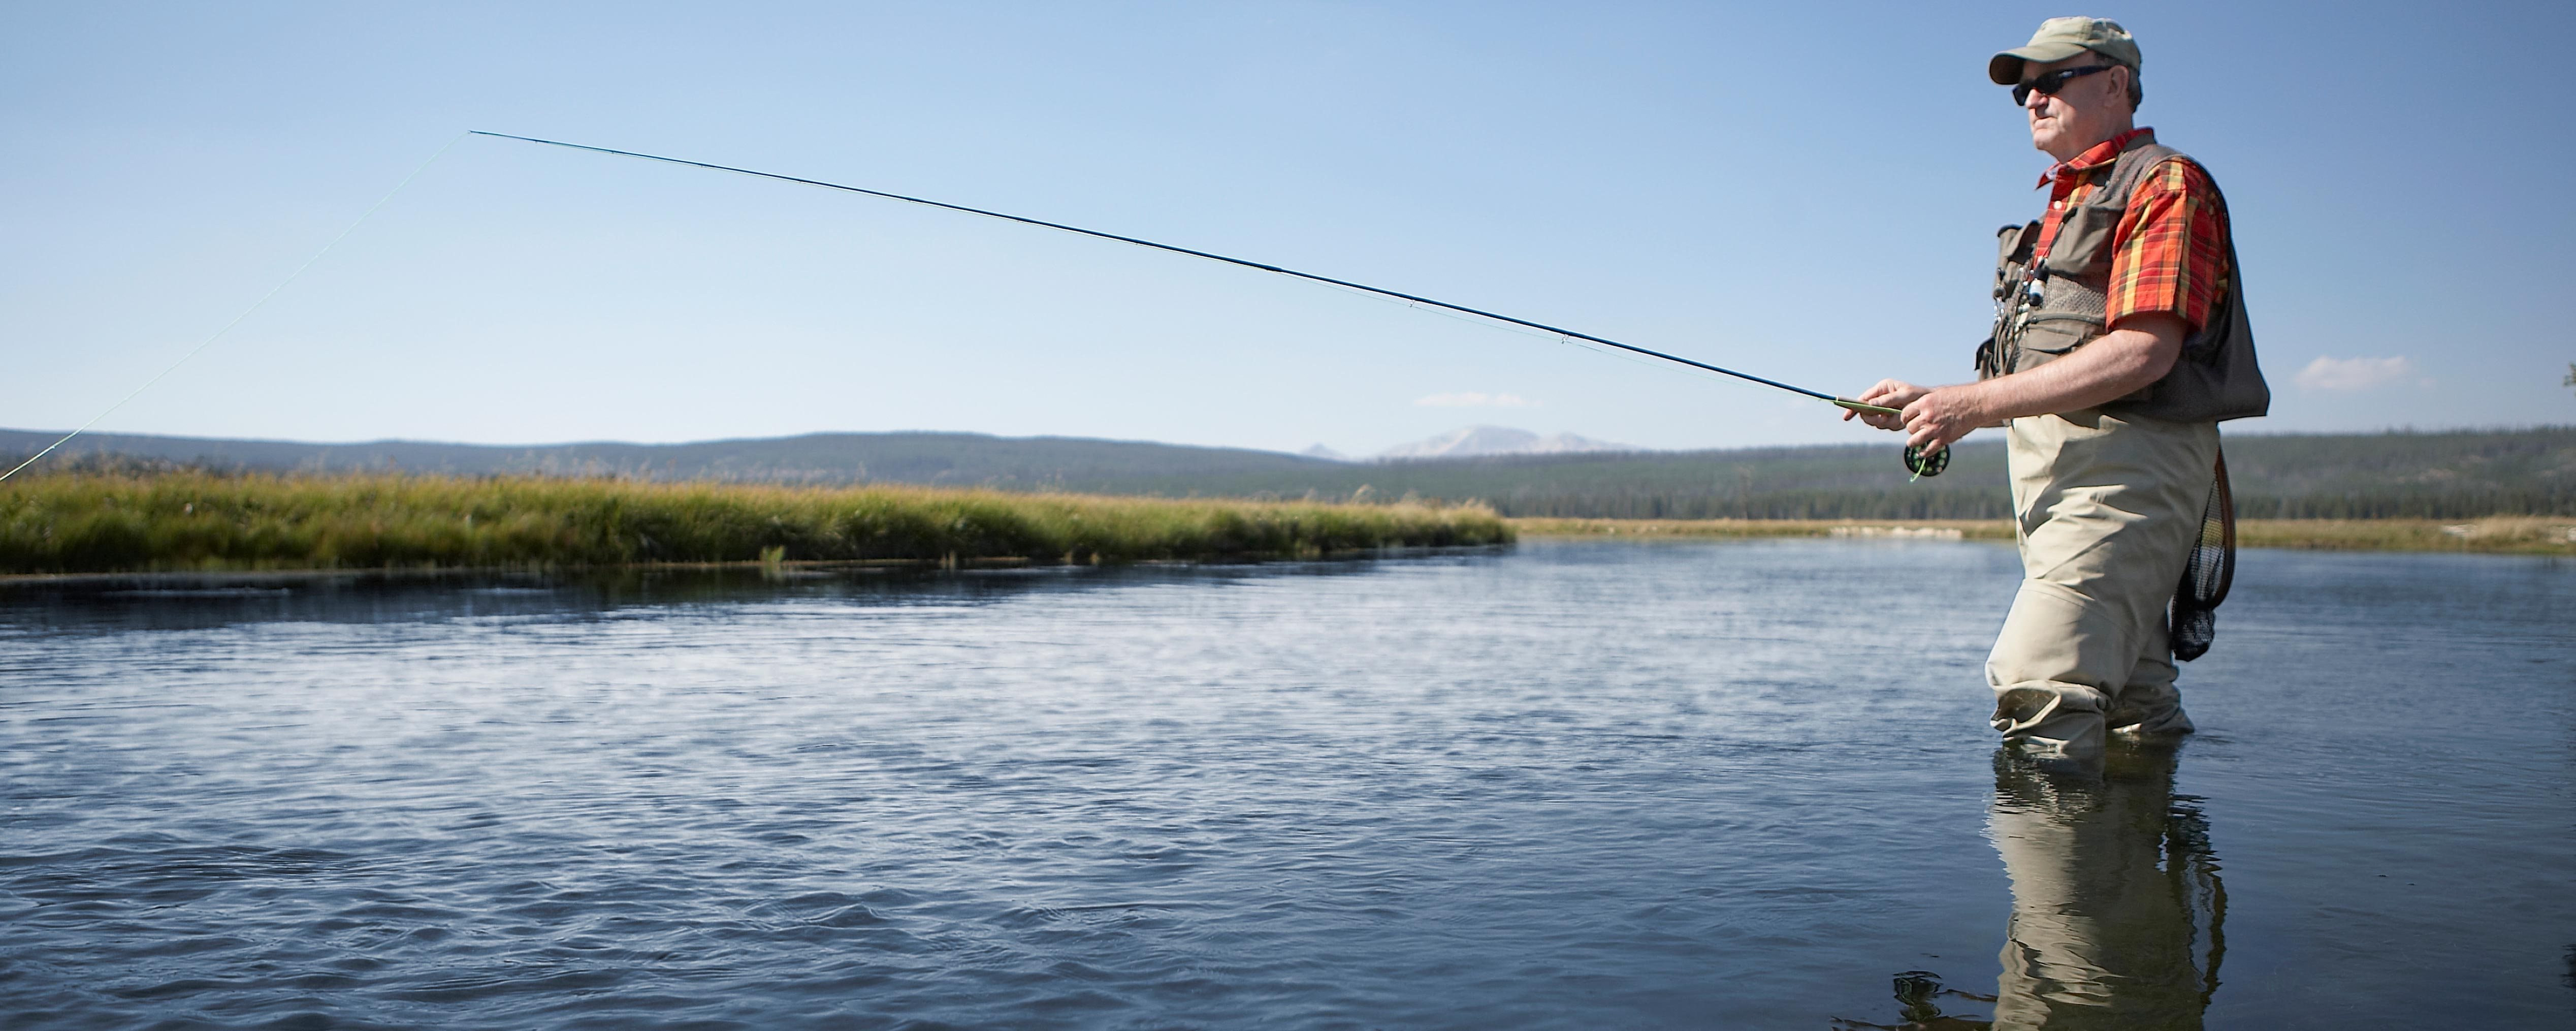 Get A Freshwater Fishing License